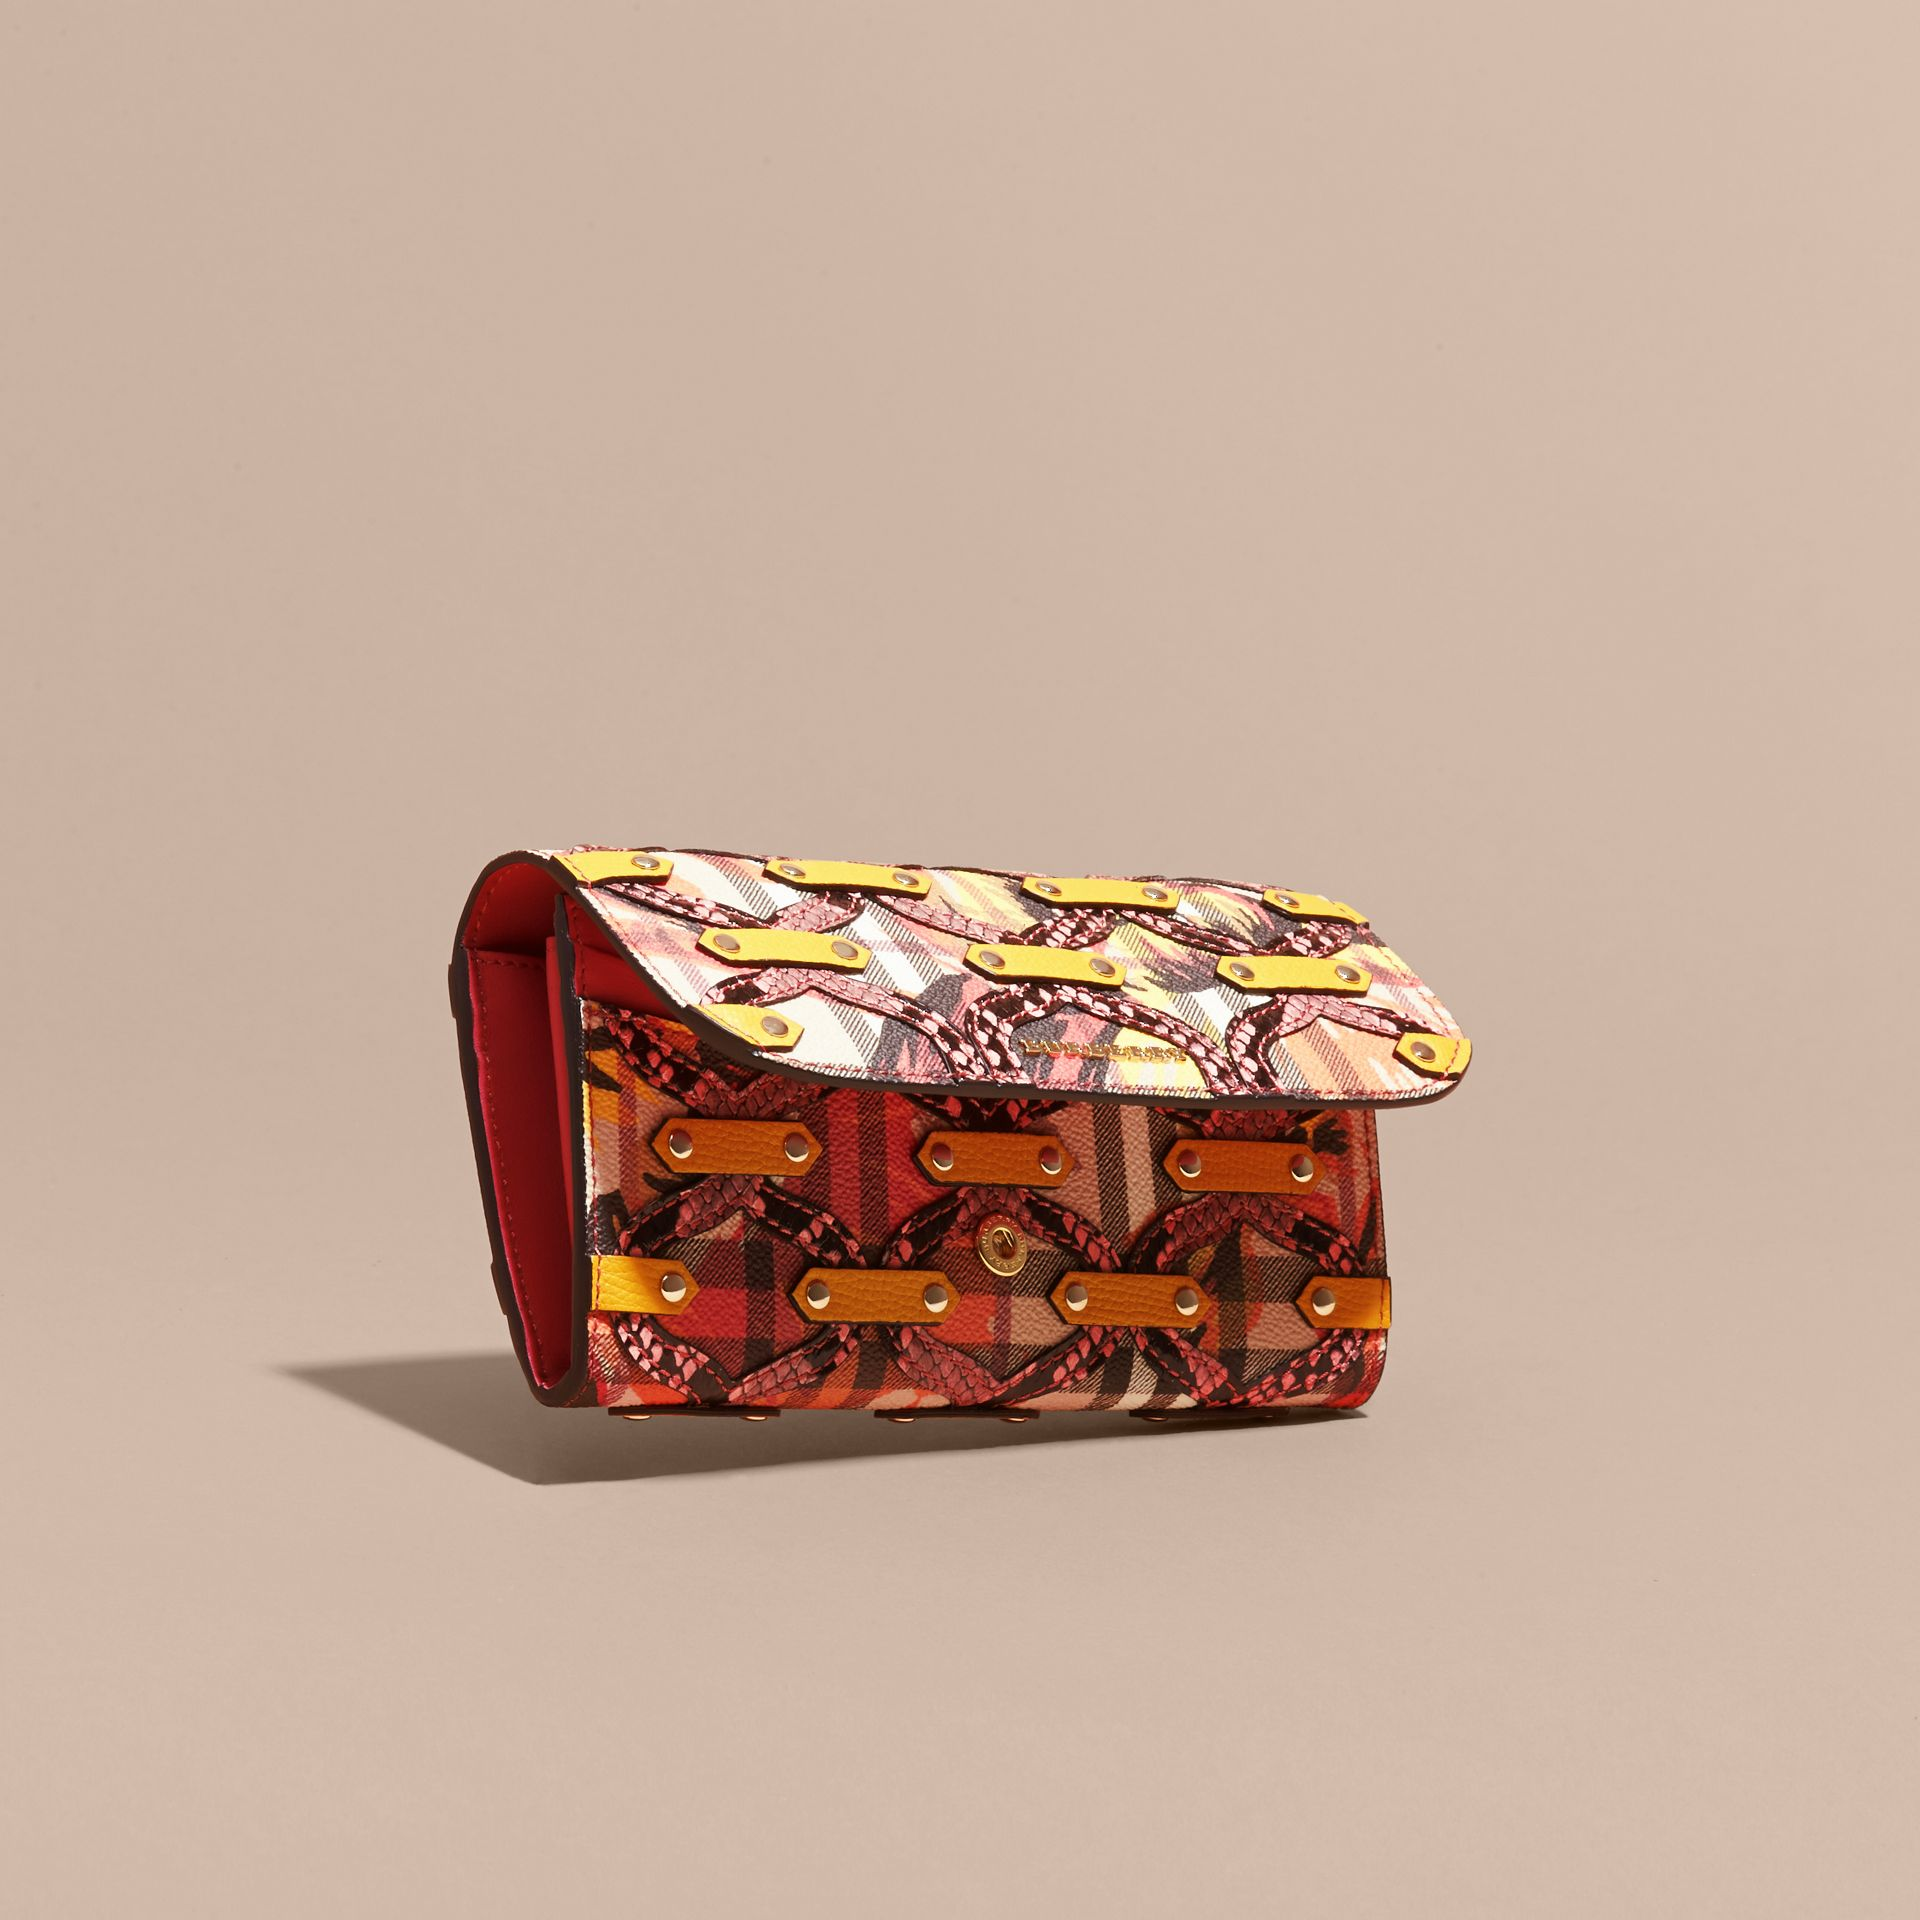 Snakeskin Appliqué Peony Rose Print Haymarket Check Continental Wallet in Larch Yellow - gallery image 3